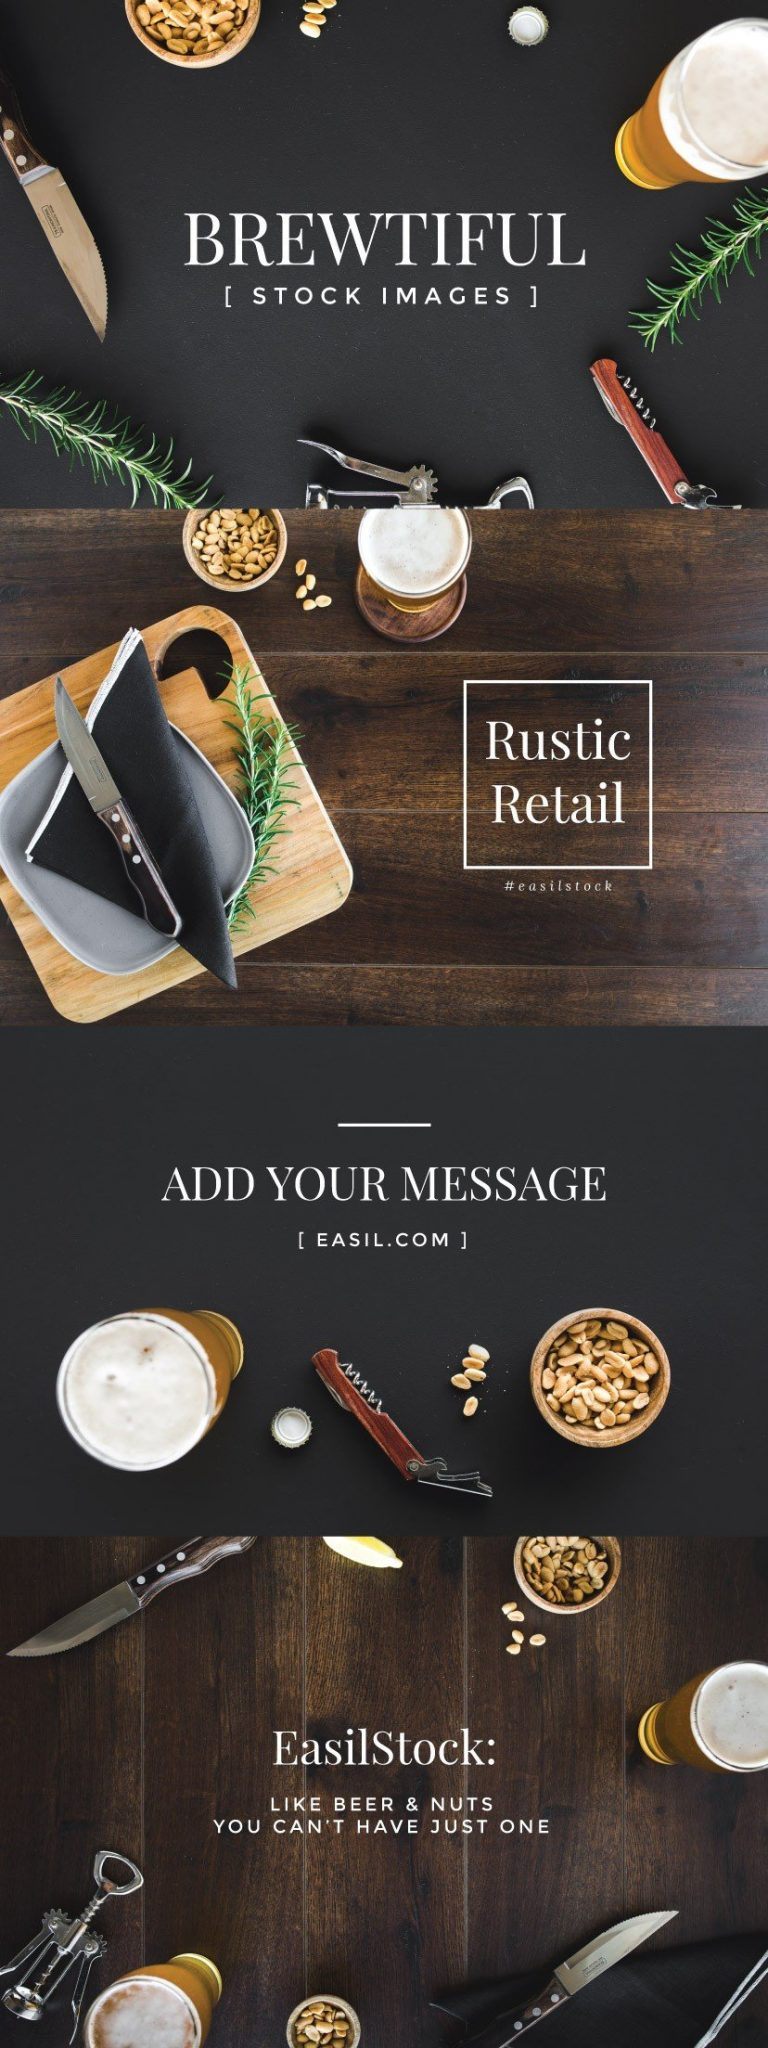 Brewtiful pub styled stock photography